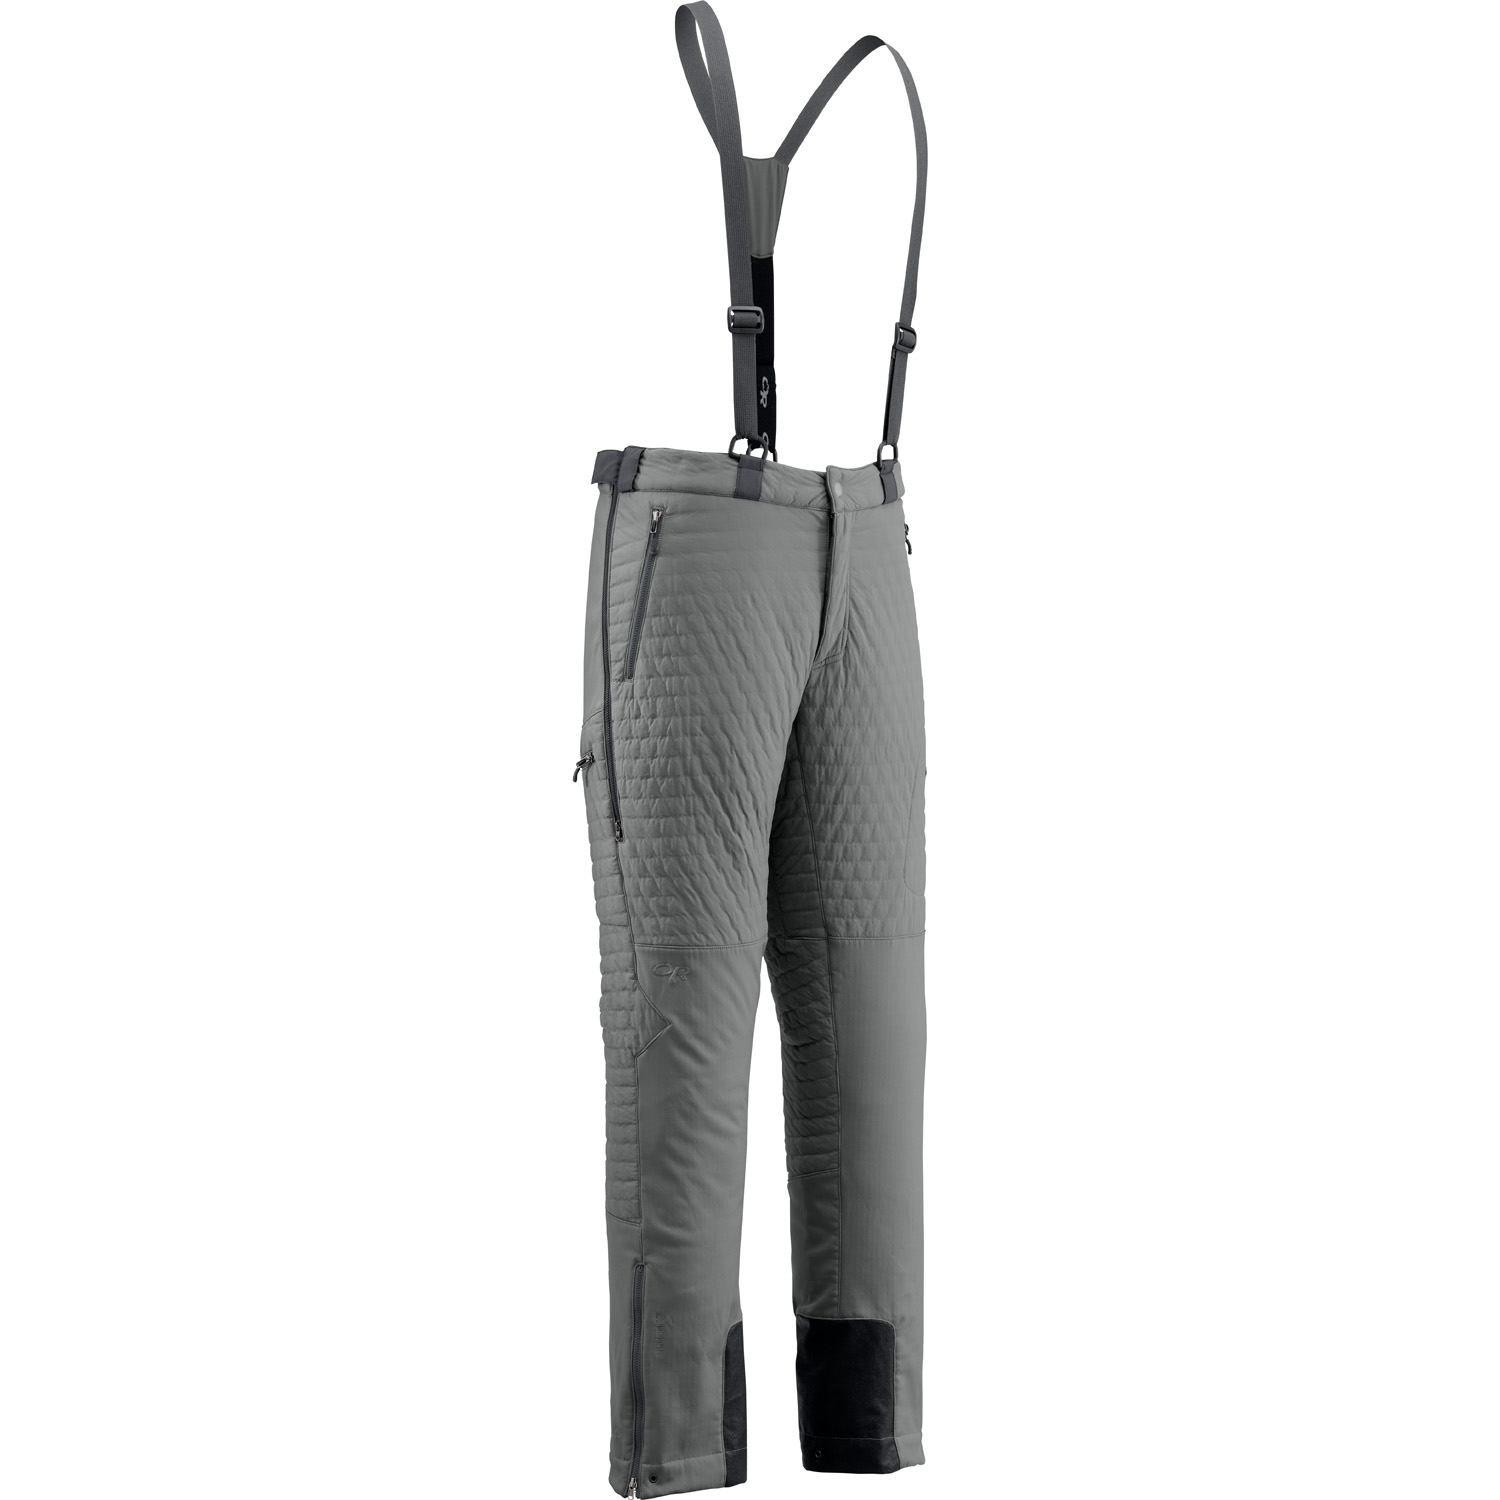 Outdoor Research Lodestar Pant - Melding the warmth of a puffy with the moisture-wicking properties of fleece and the protection of a soft shell, the Lodestar Jacket and Pant were built for ice and alpine climbing in cold climates. They employ new Polartecr Power Shieldr High Loft² , the warmest, lightest and most compressible softshell fabric, and Polartecr Power Shieldr Pro, the ultimate soft shell, in key areas for increased weather protection and warmth while maintaining critical breathability. The result allows climbers to eliminate layers, improve freedom of movement, and transport moisture more effectively through a wider range of cold temperatures and weather conditions.